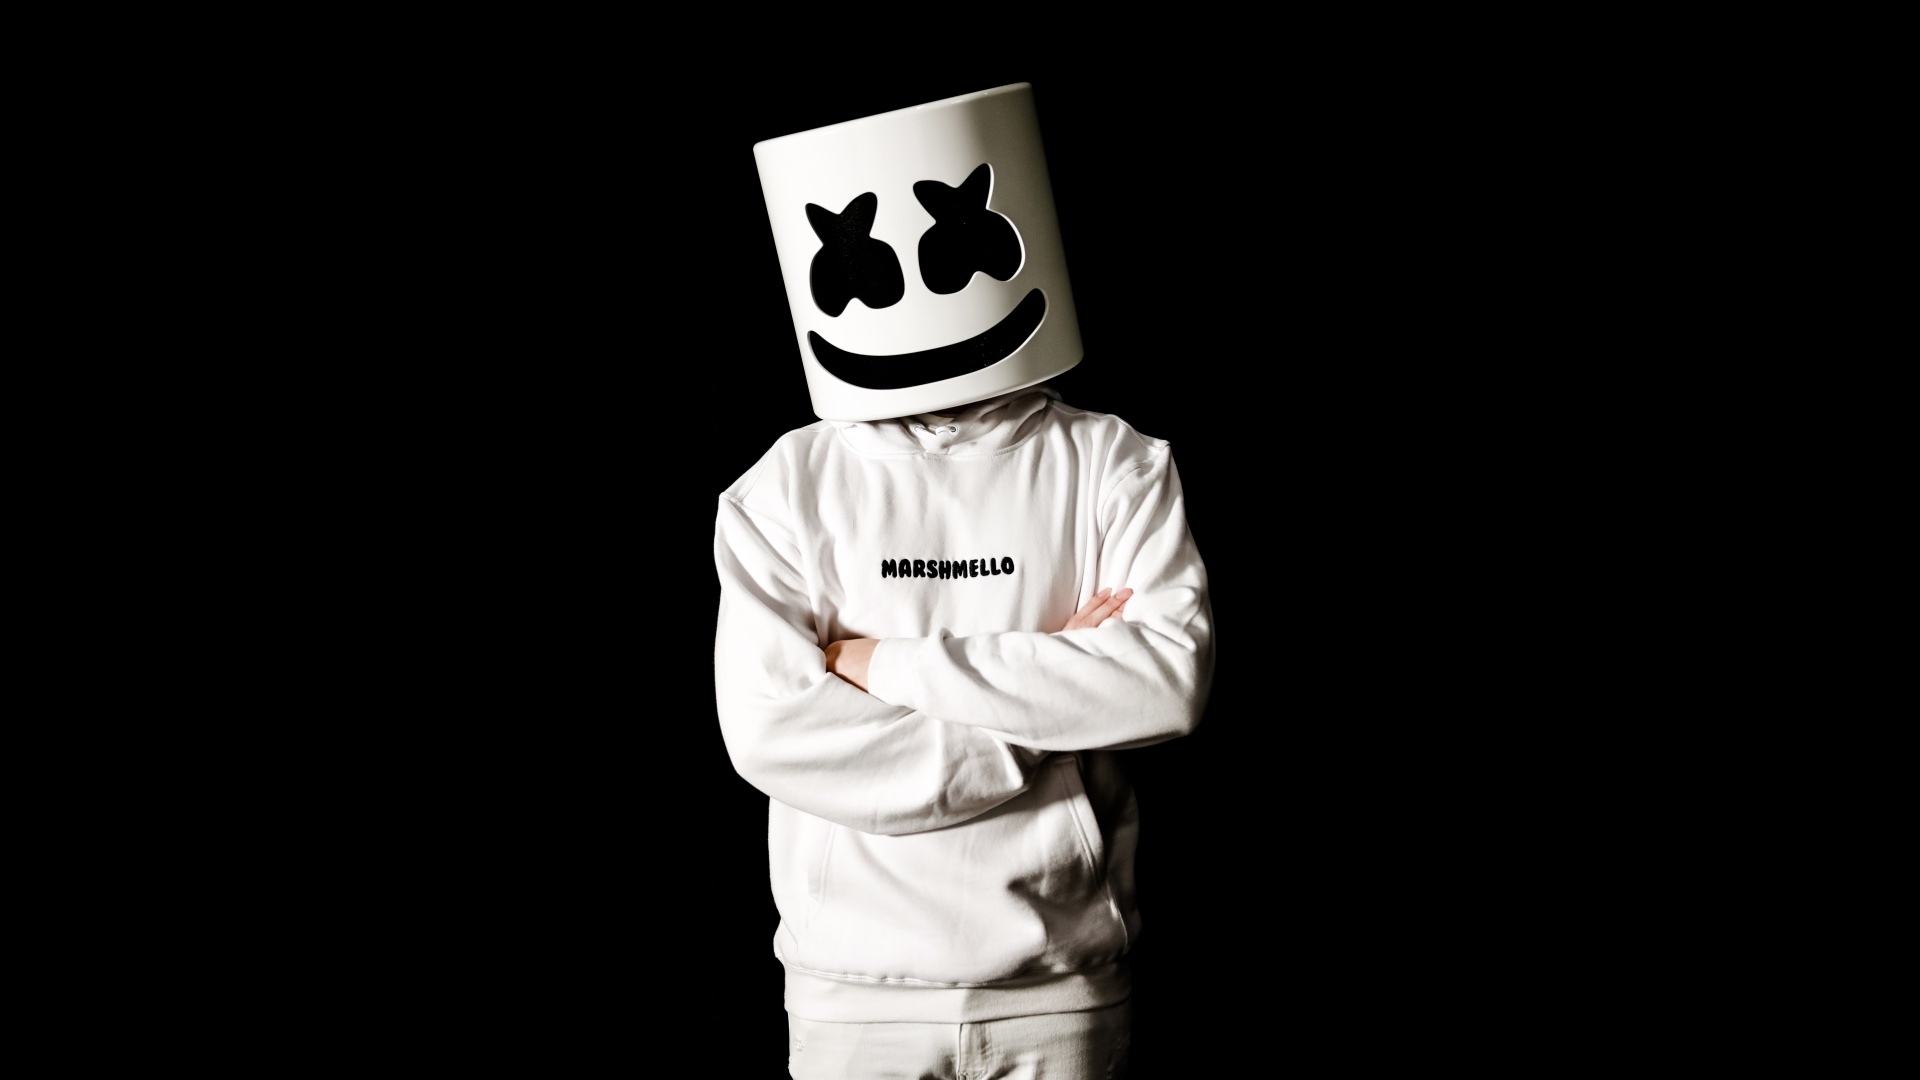 Marshmello 4k Wallpaper Monochrome American Dj Black Background 5k 8k Black Dark 422